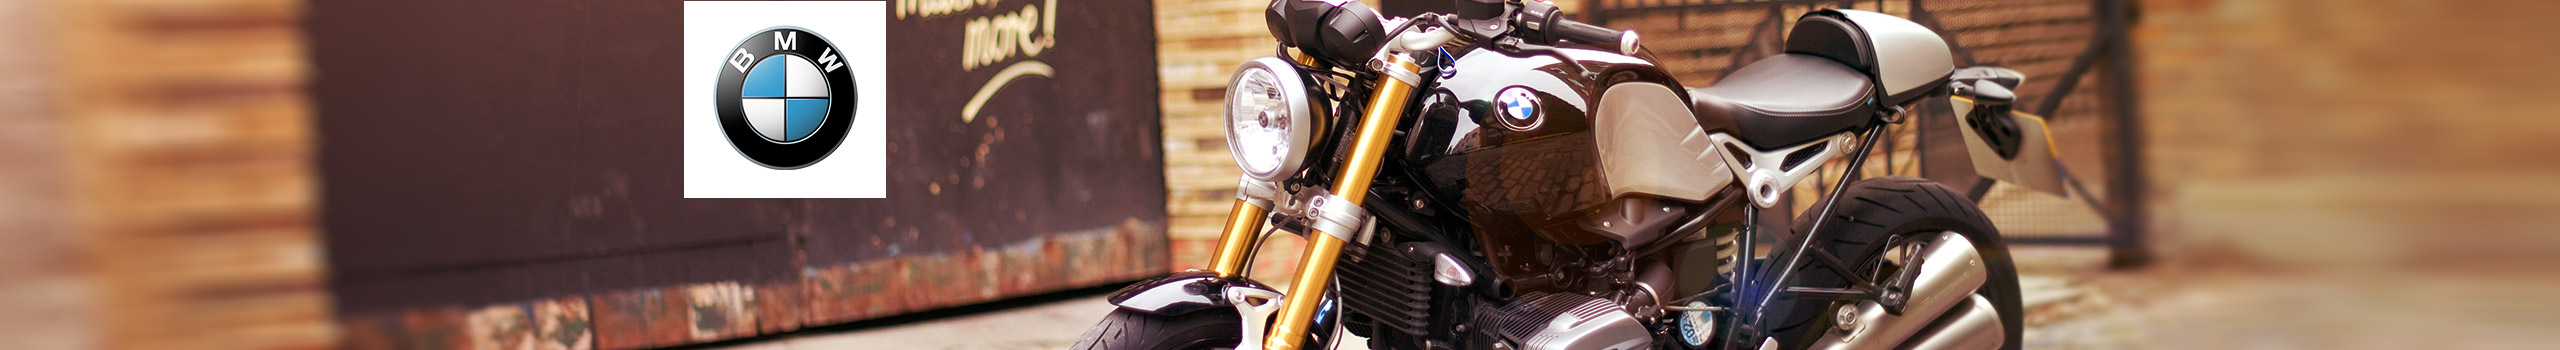 BMW motorcycles for sale | New and used BMW motorbikes | Auto Trader ...